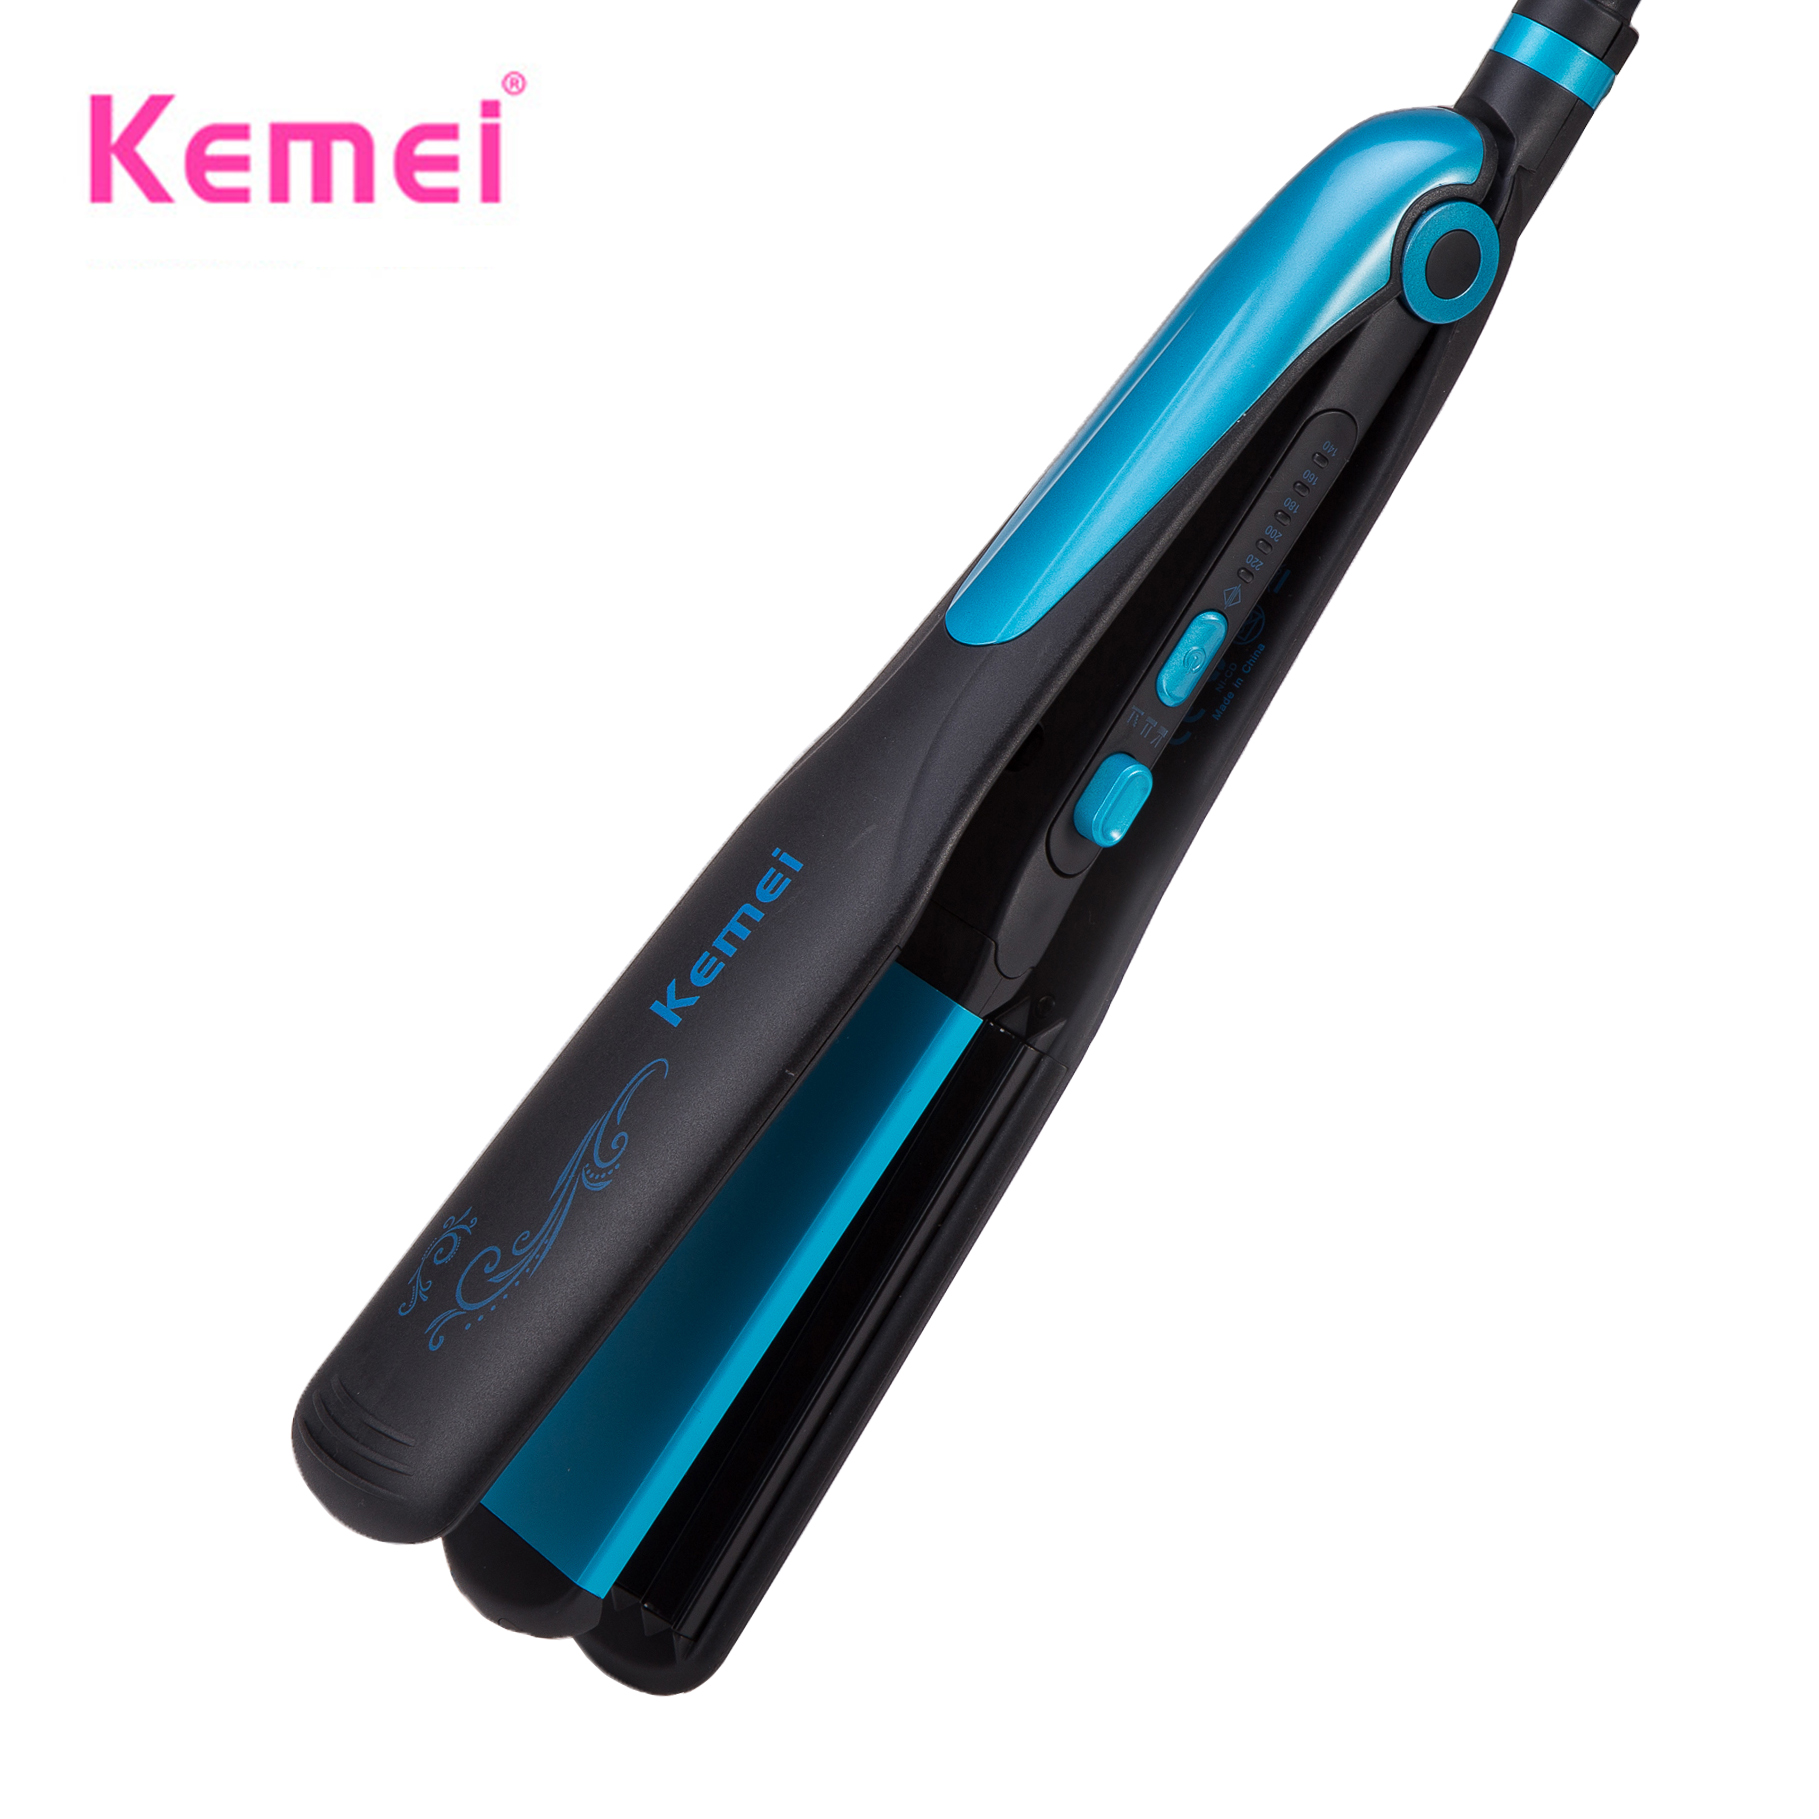 kemei hair straightener waves curling irons curler women professional 2 in 1 ionic straightening iron & curler styling tool flat 2 in 1 new flat iron straightening irons styling tools professional hair straightener